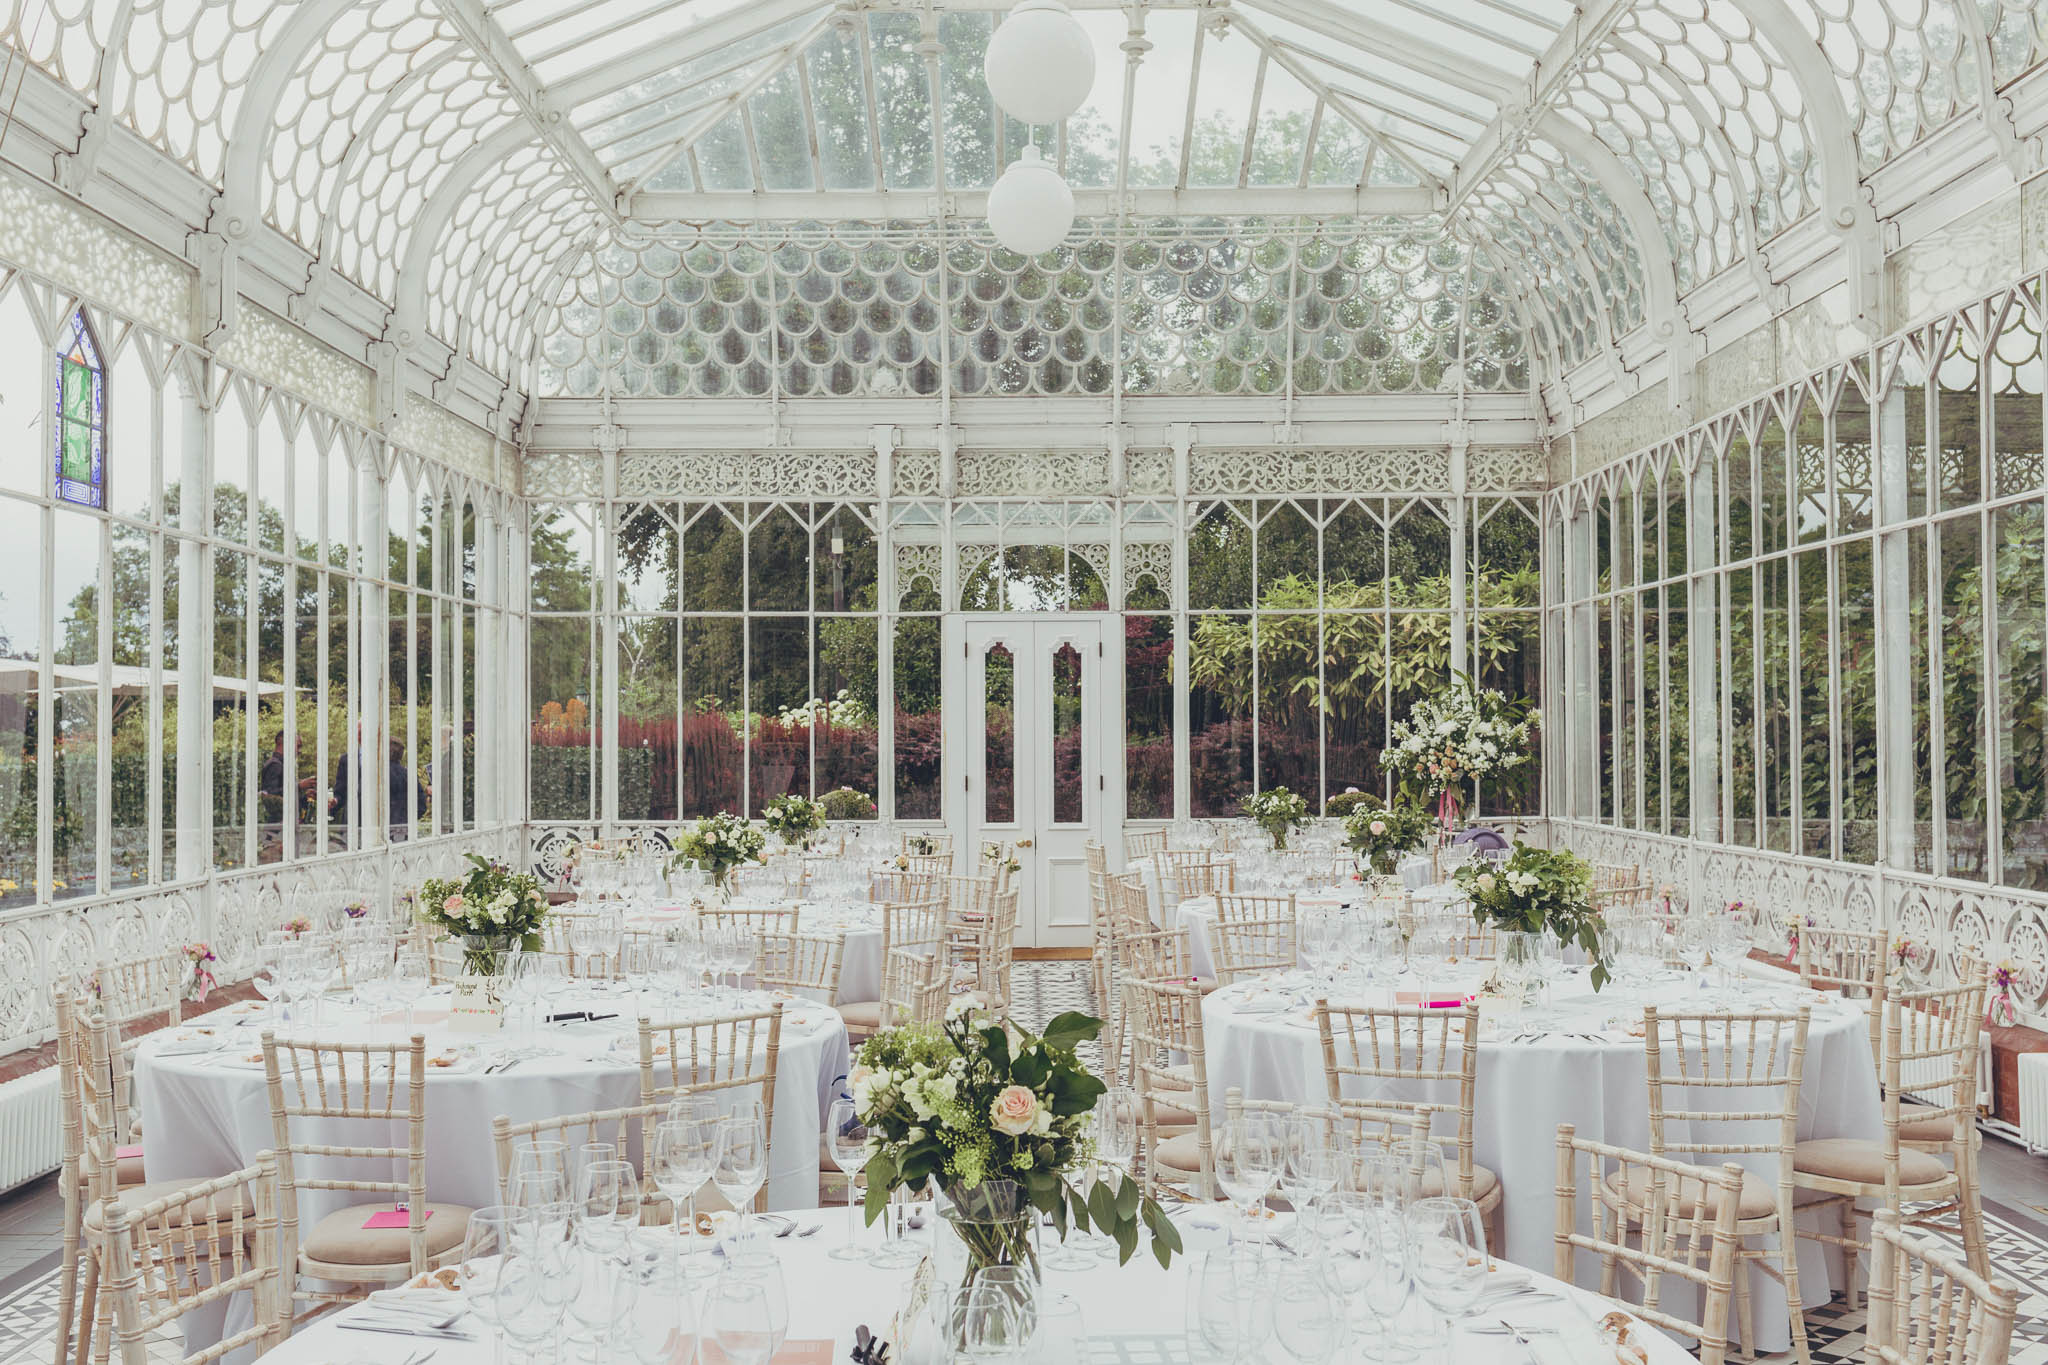 Horniman Museum Wedding Reception Room - Image by  Jonny Donovan